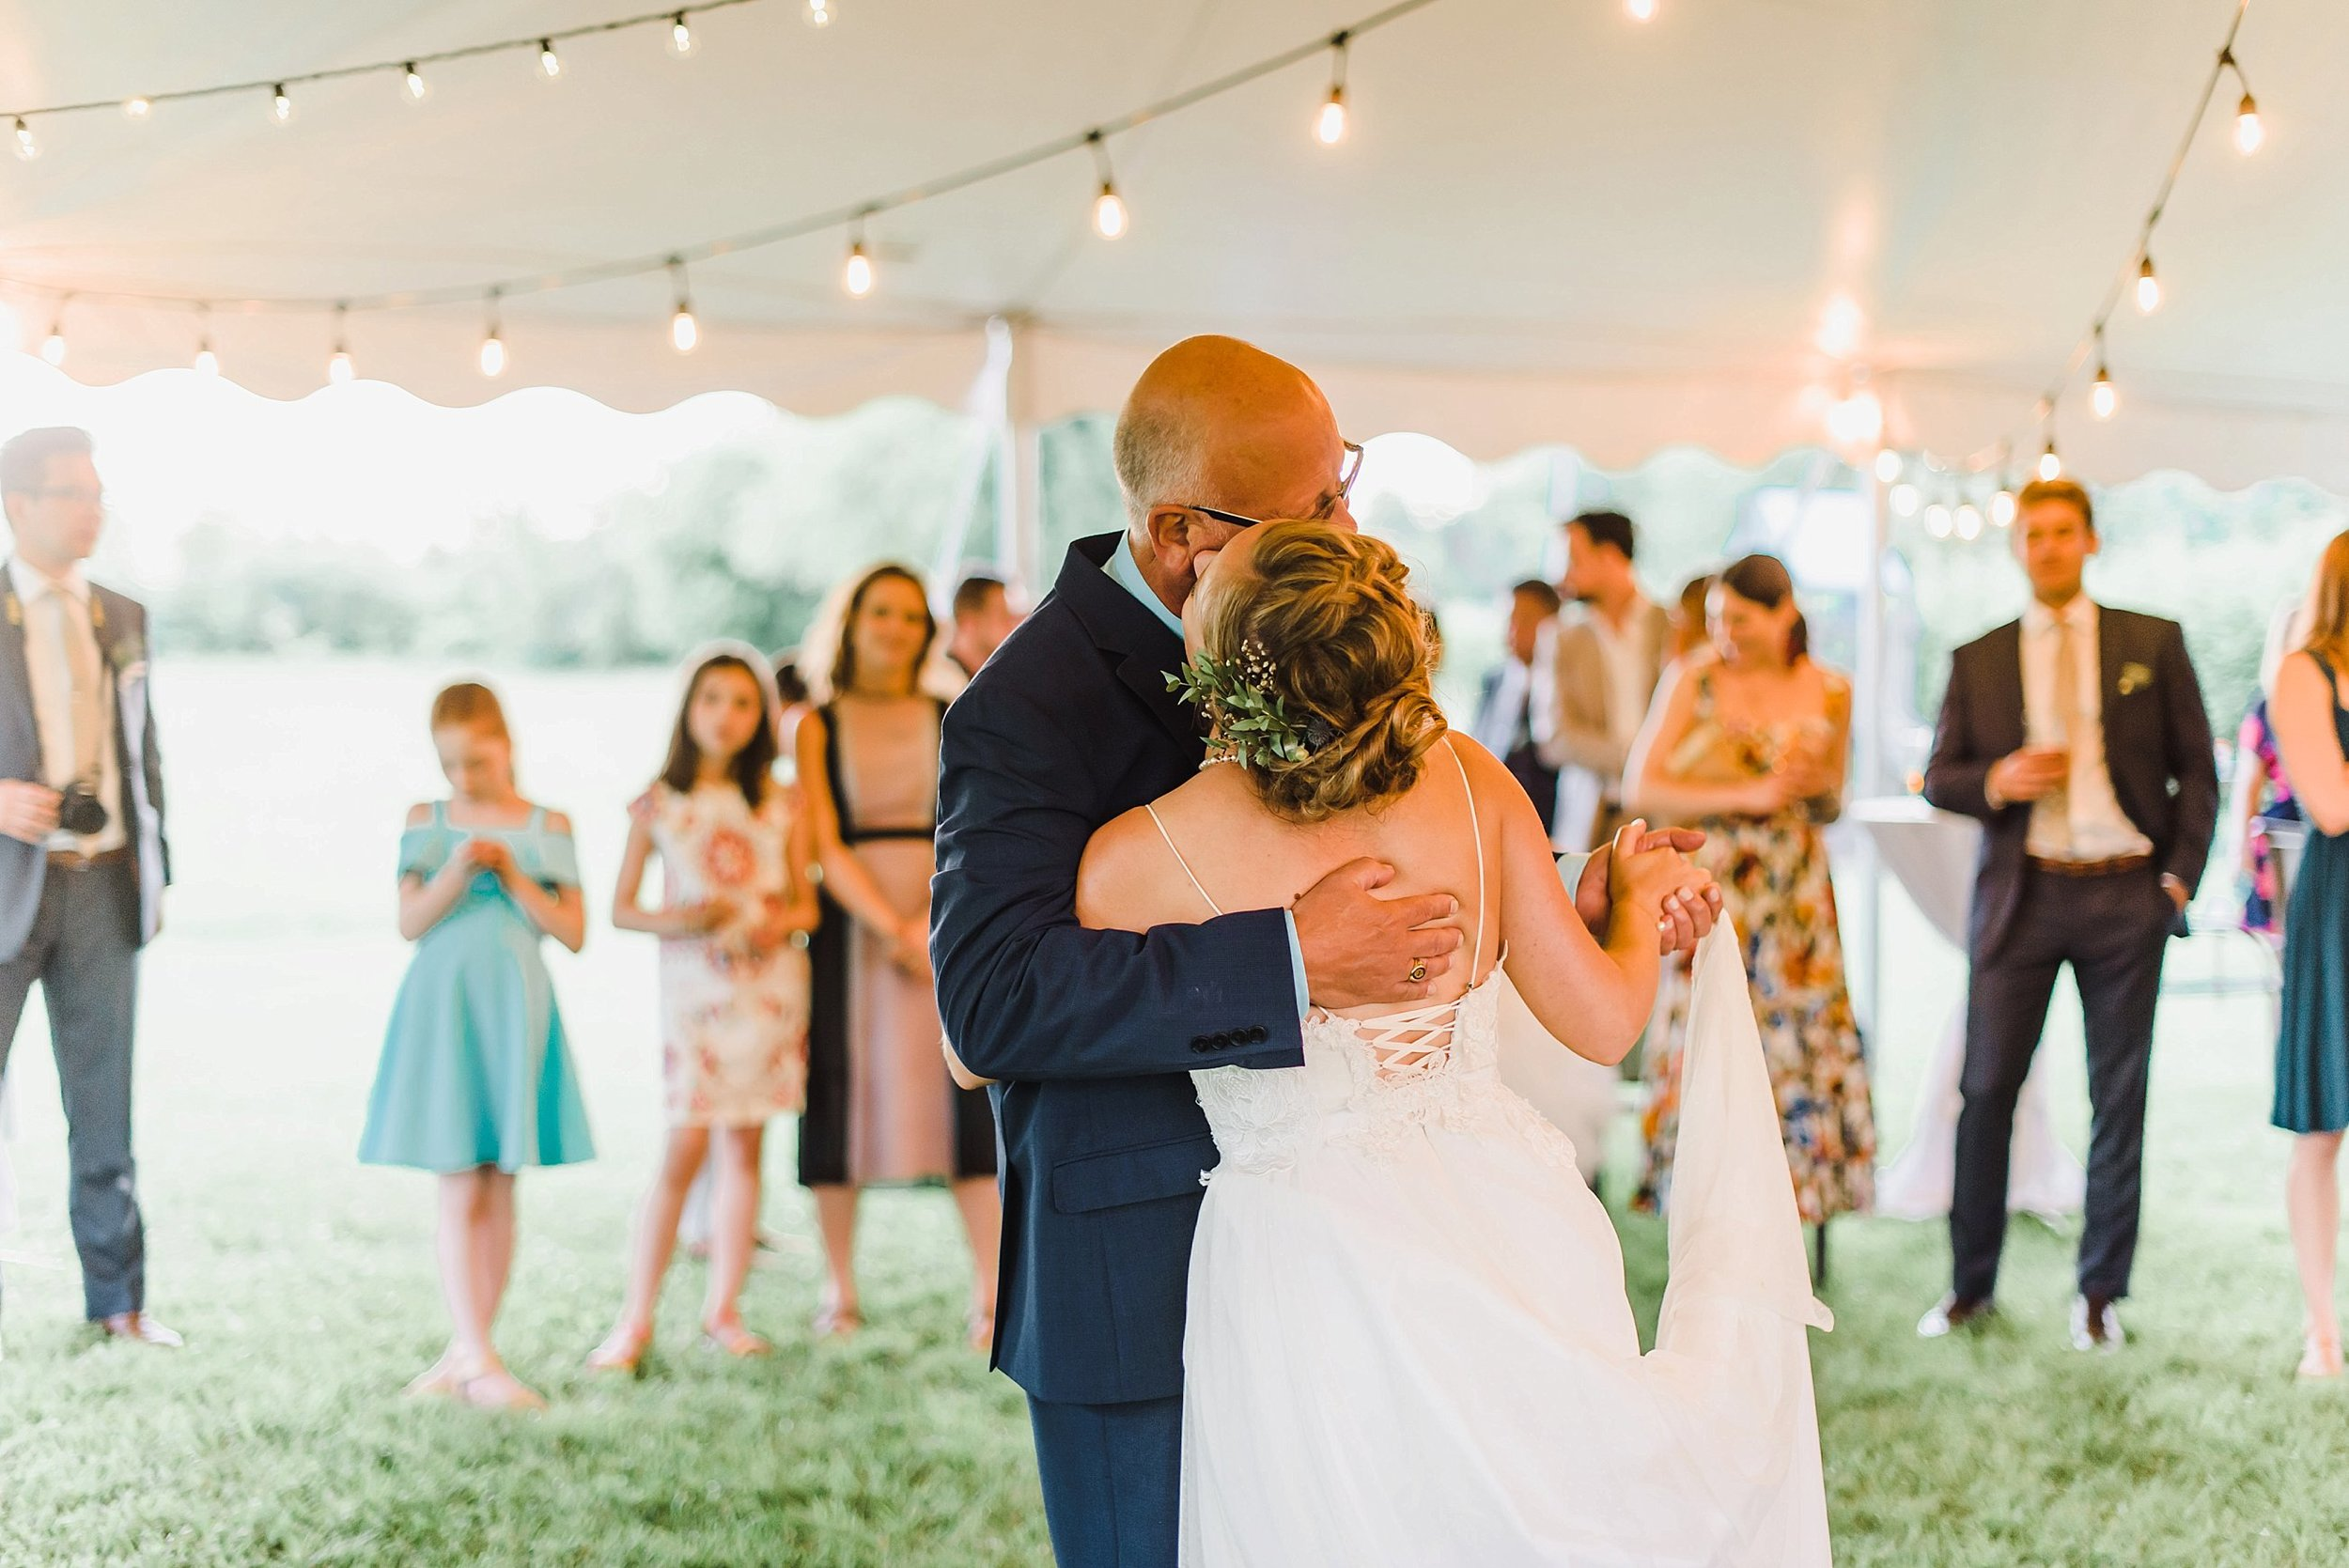 A sweet father-daughter dance!